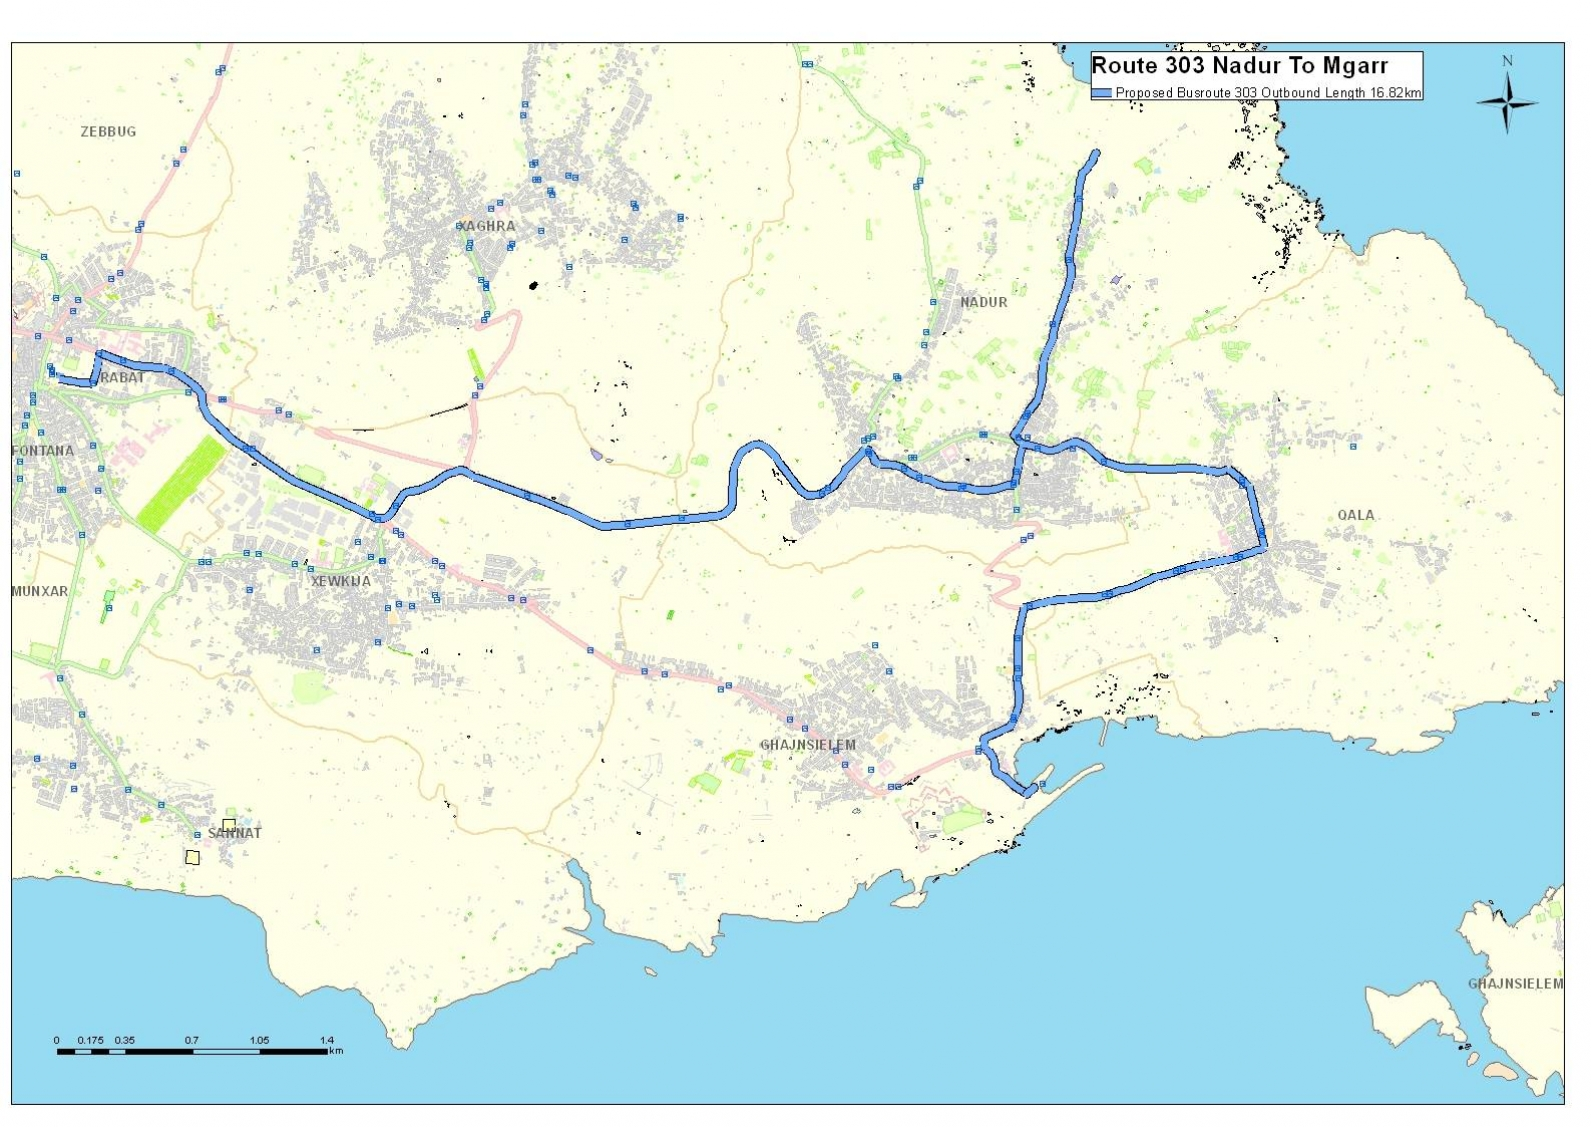 Land-current-network-routes-and-schedules-Gozo-8